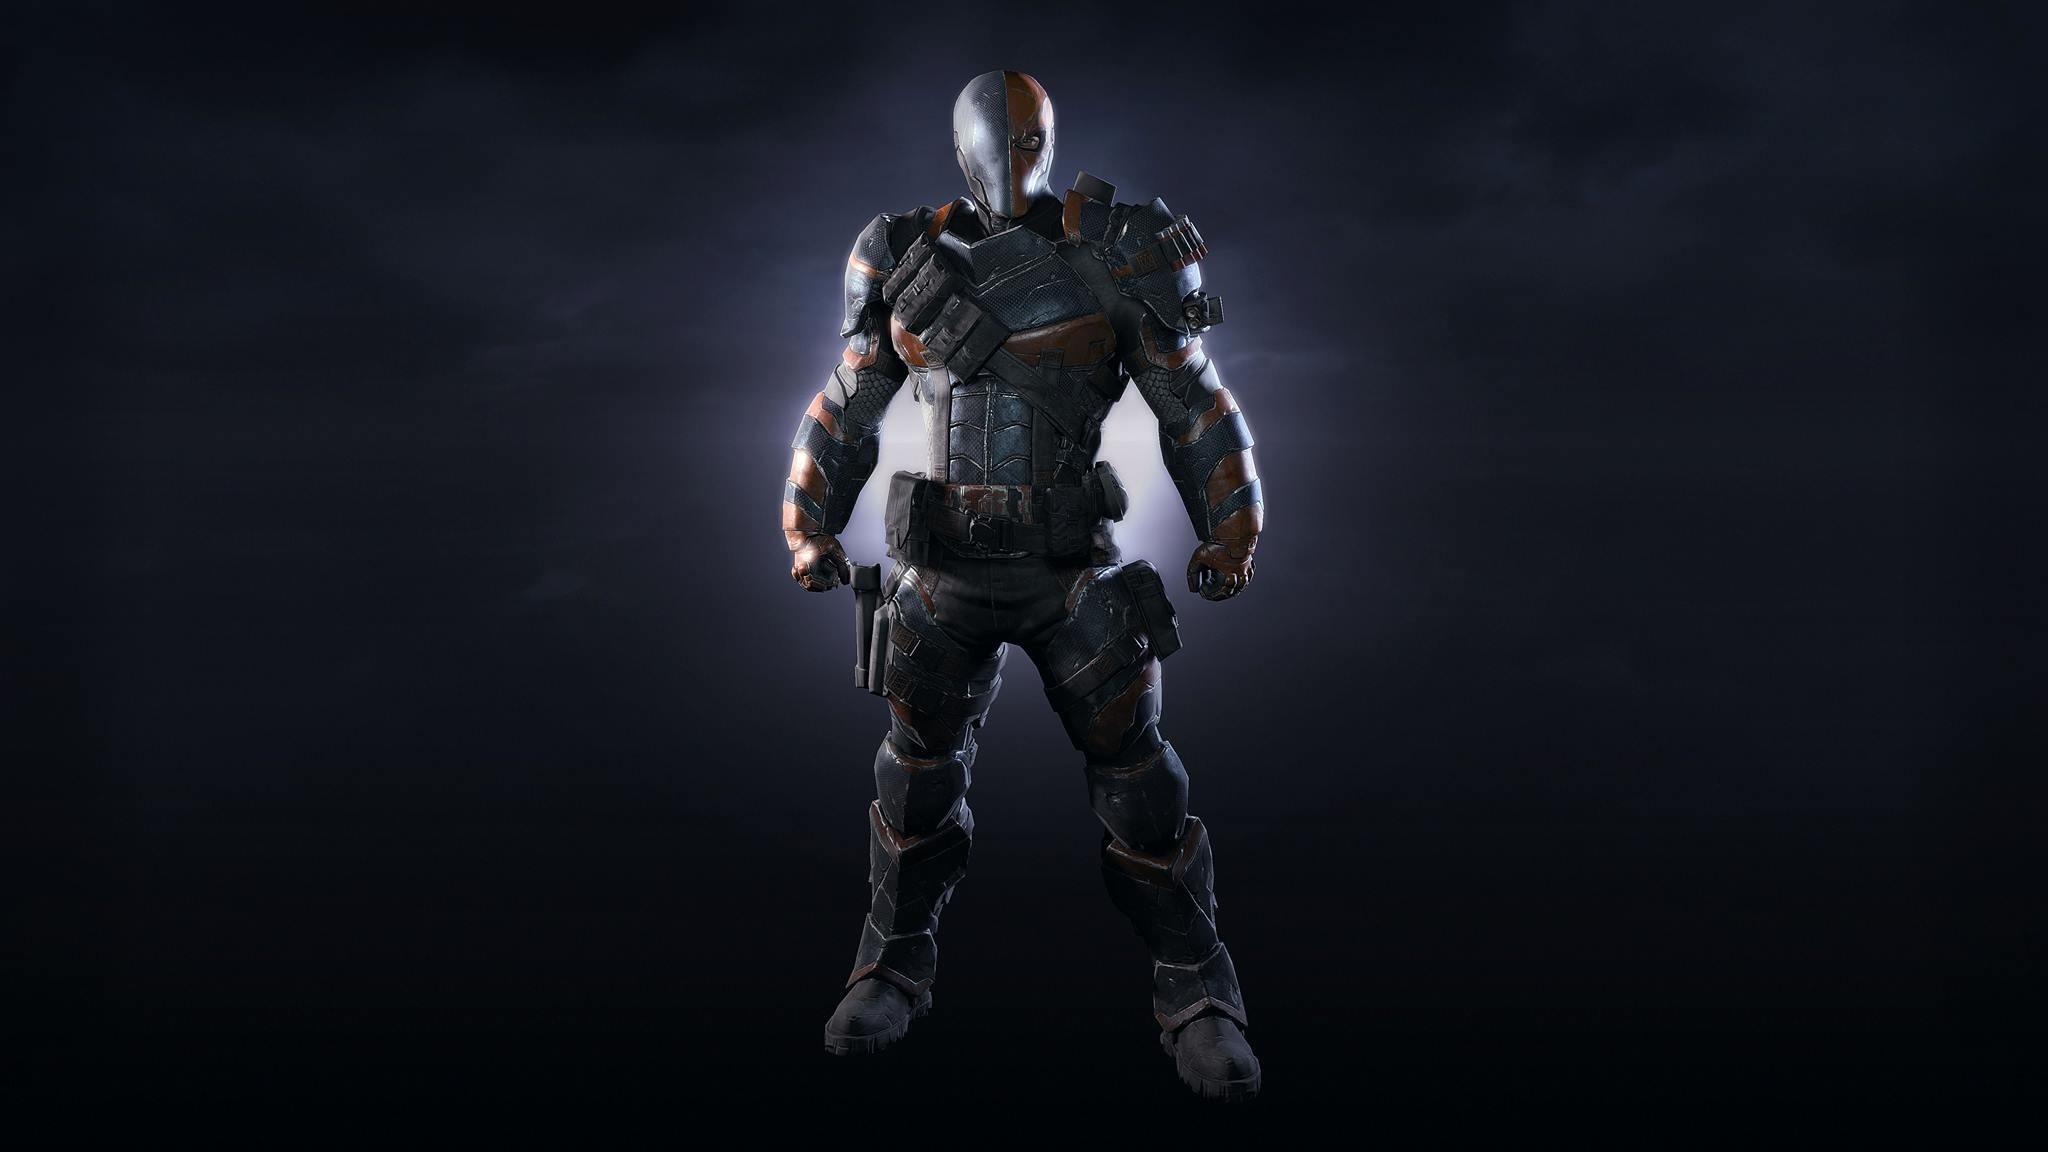 Agent Venom Wallpapers High Quality Resolution with HD Wallpaper Resolution